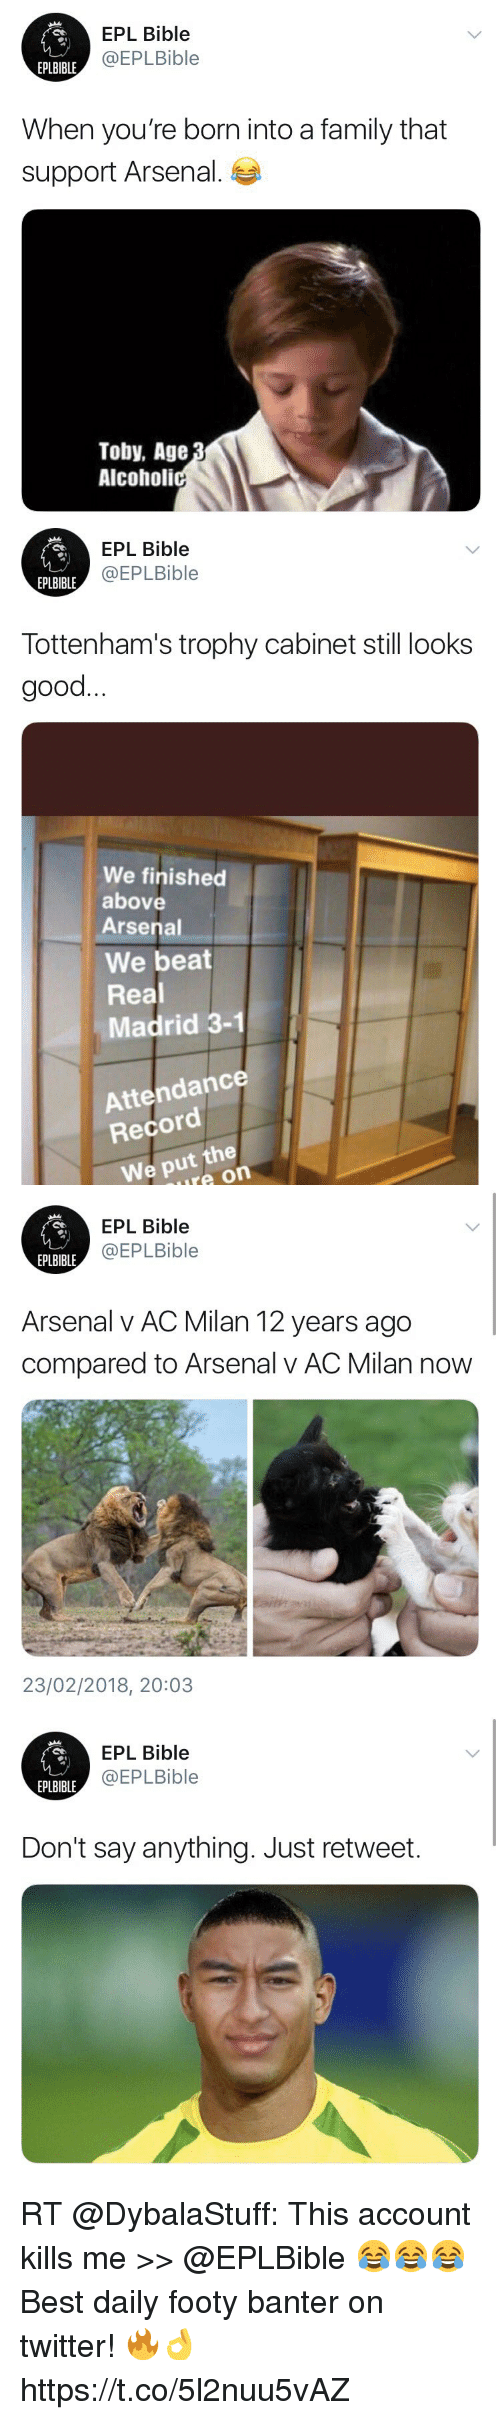 Arsenal, Family, and Real Madrid: EPL Bible  @EPLBible  EPLBIBLE  When you're born into a family that  support Arsenal.  Toby, Age  Alcoholi   EPL Bible  @EPLBible  EPLBIBLE  Tottenham's trophy cabinet still looks  good  We finished  above  Arsenal  We beat  Real  Madrid 3-1  Attendance  Record  We put the  ure on   EPL Bible  @EPLBible  EPLBIBLE  Arsenal v AC Milan 12 years ago  compared to Arsenal v AC Milan now  23/02/2018, 20:03   EPL Bible  @EPLBible  EPLBIBLE  Don't say anything. Just retweet. RT @DybalaStuff: This account kills me >> @EPLBible 😂😂😂   Best daily footy banter on twitter! 🔥👌 https://t.co/5l2nuu5vAZ